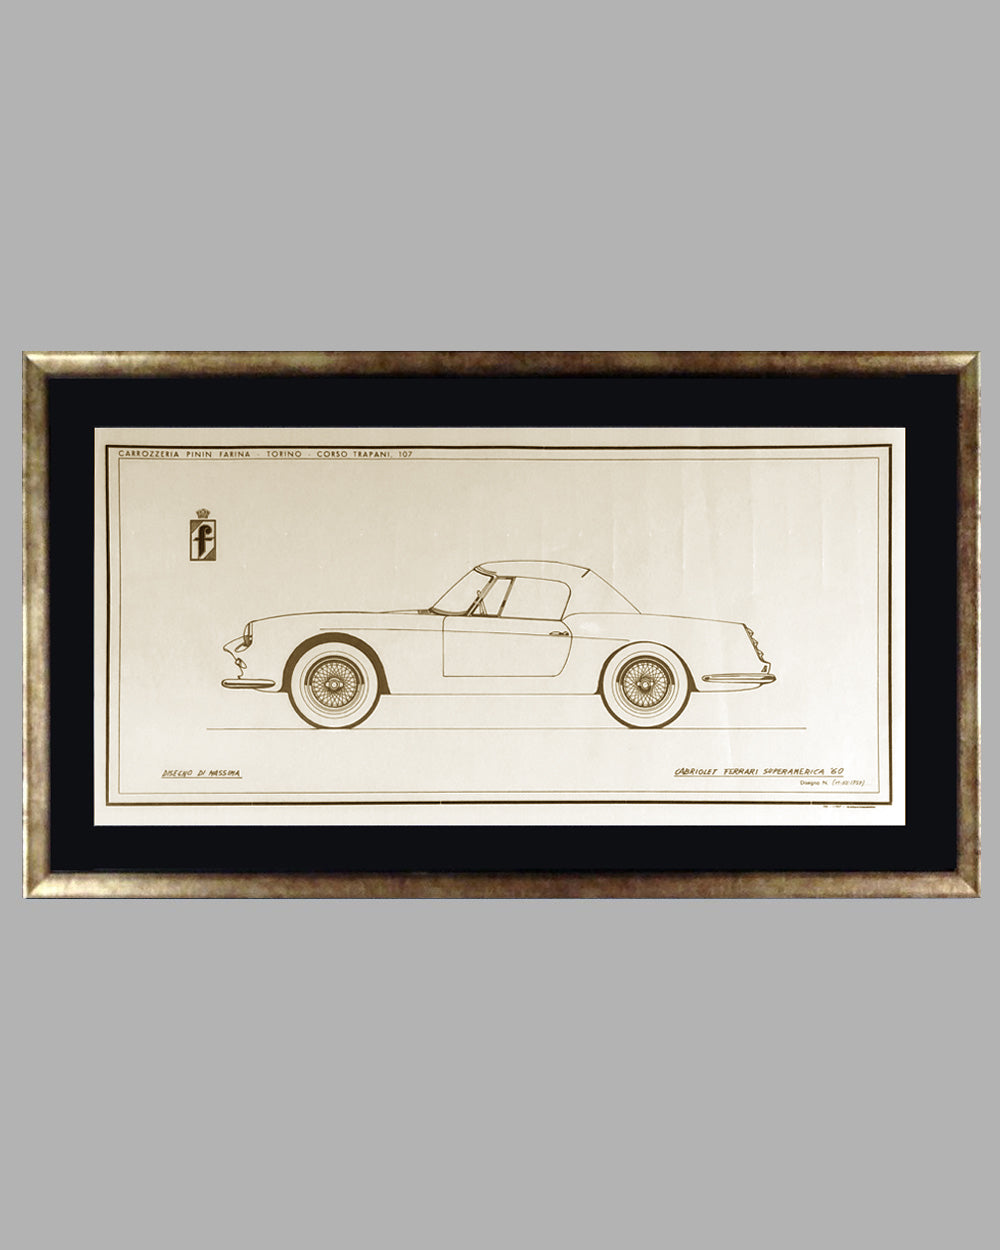 1960 Ferrari Superamerica Cabriolet China Ink Original Drawing by the Pininfarina Studio